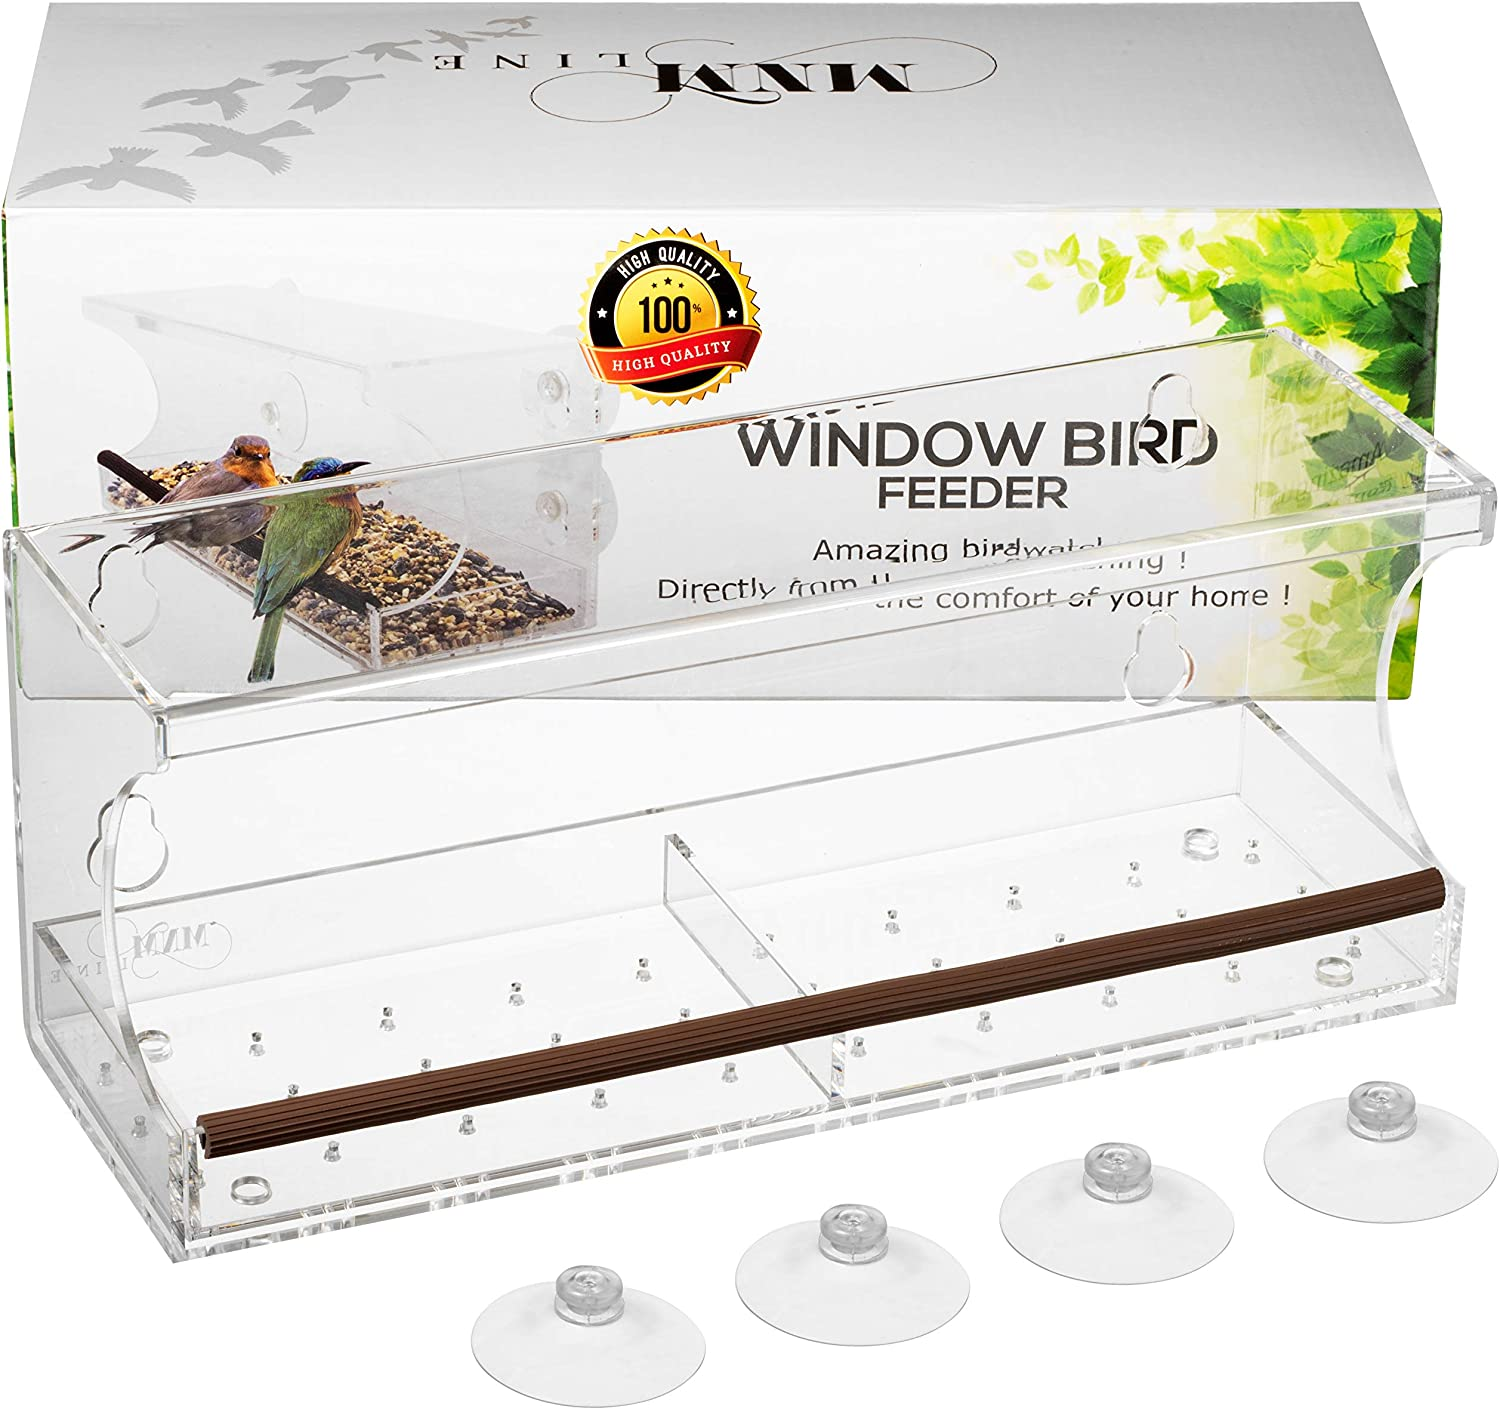 Window Bird Feeder for Outside Birds View - Window Bird Feeders with Strong Suction Cups - Bird Feeder Window - Window Mount Bird Feeder - Acrylic Bird House